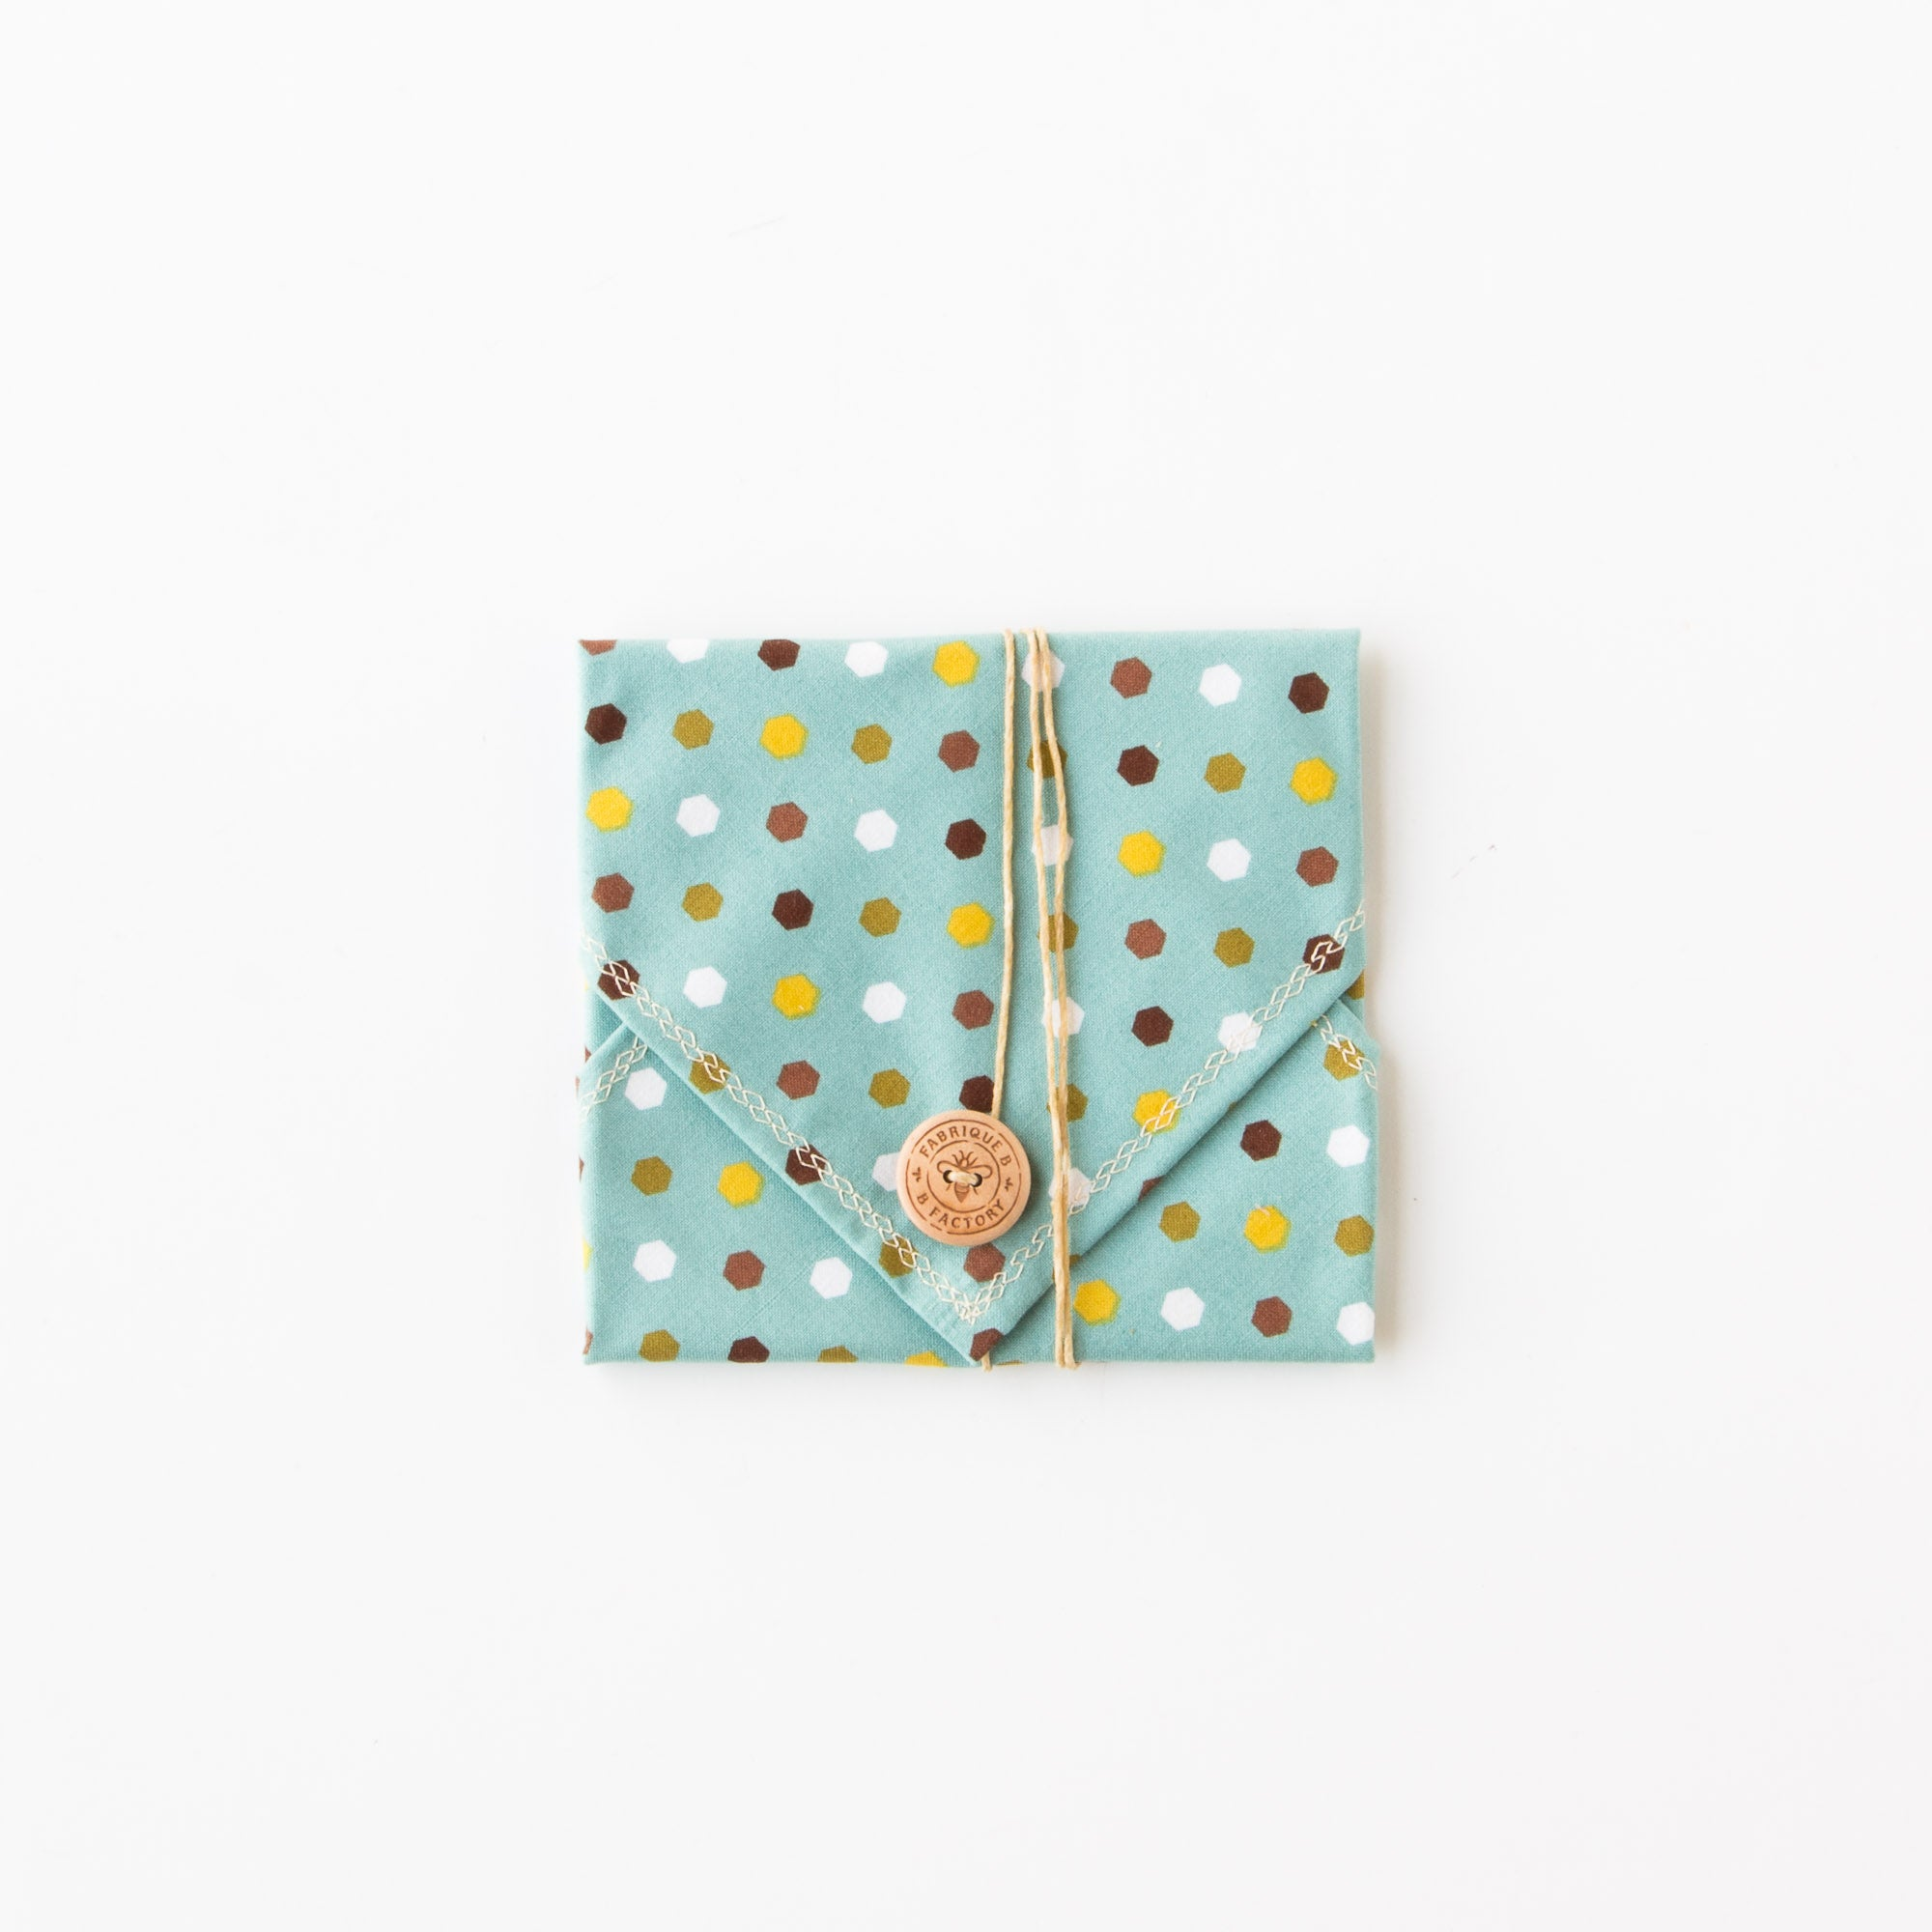 Blue & Hexagons - Bees Wax Sandwich Wrap - Eco Friendly & Zero Waste - Sold by Chic & Basta